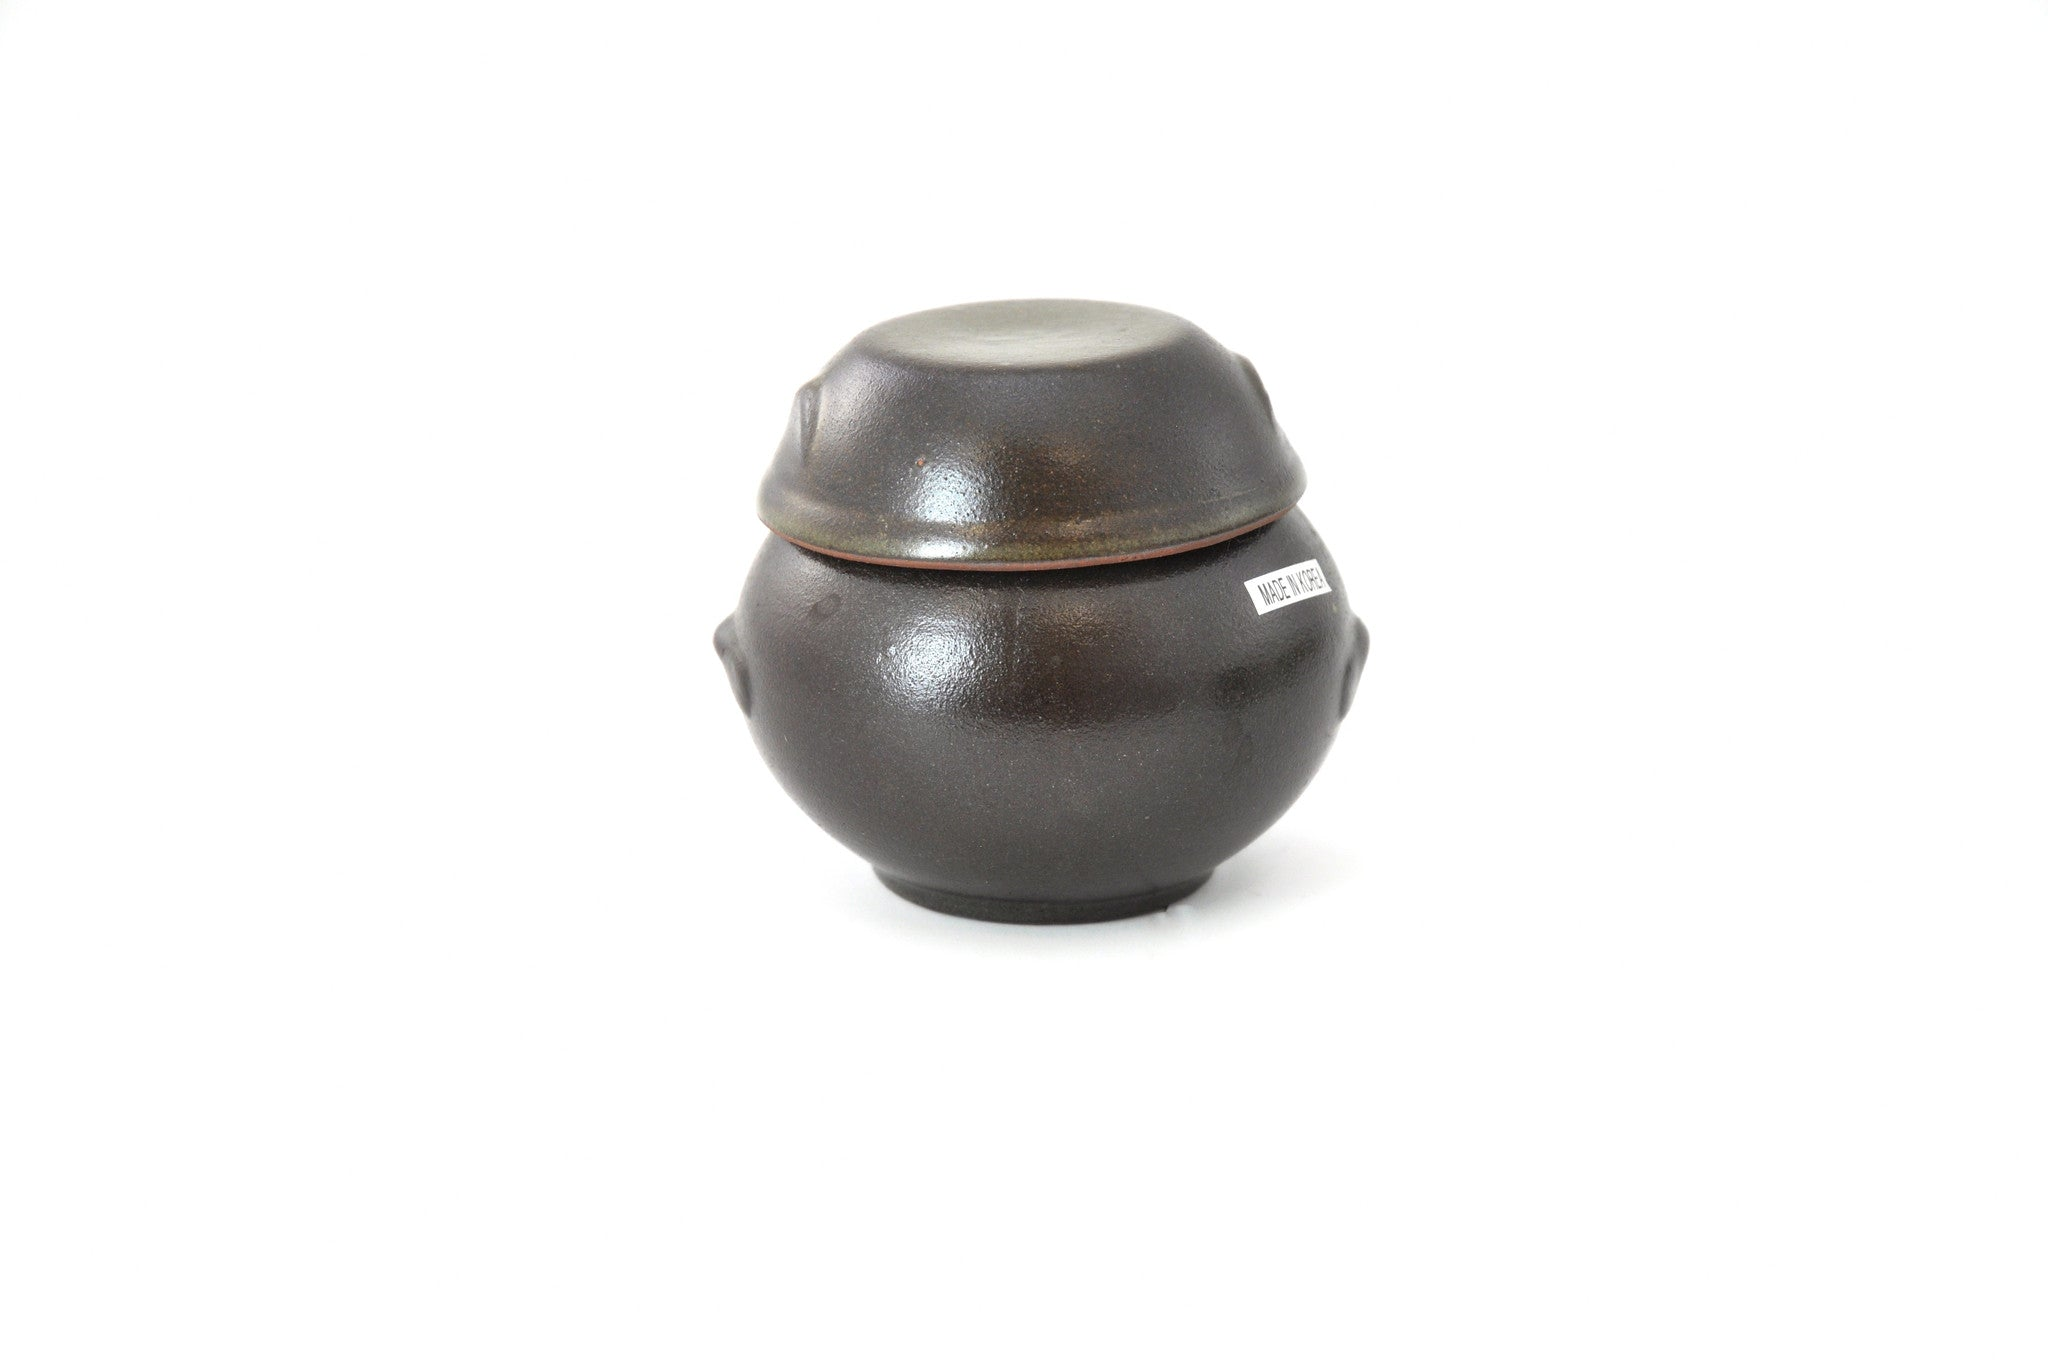 Korean Mini Clay Jar with Lid, Hangari 항아리 (Mini), Clay - eKitchenary